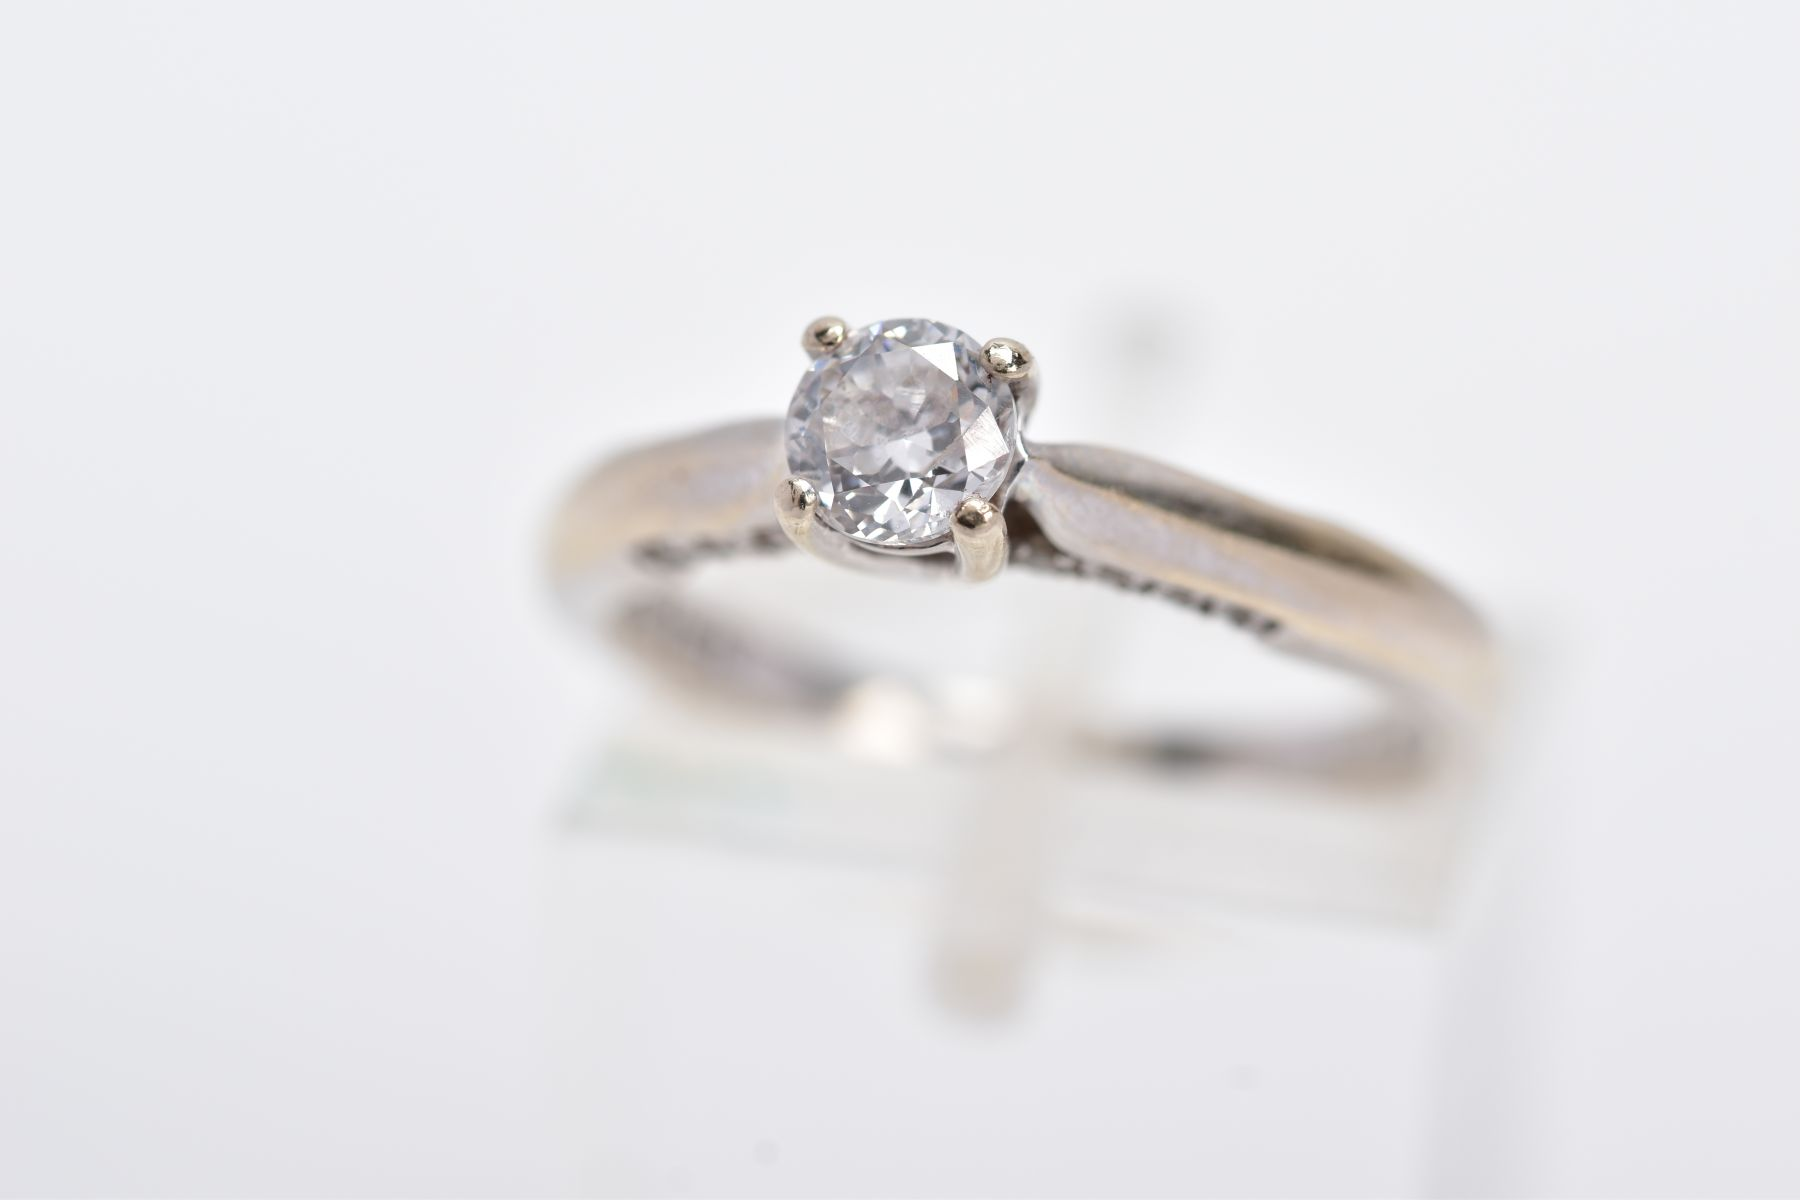 AN 18CT WHITE GOLD DIAMOND RING, designed with a central claw set, round brilliant cut diamond,